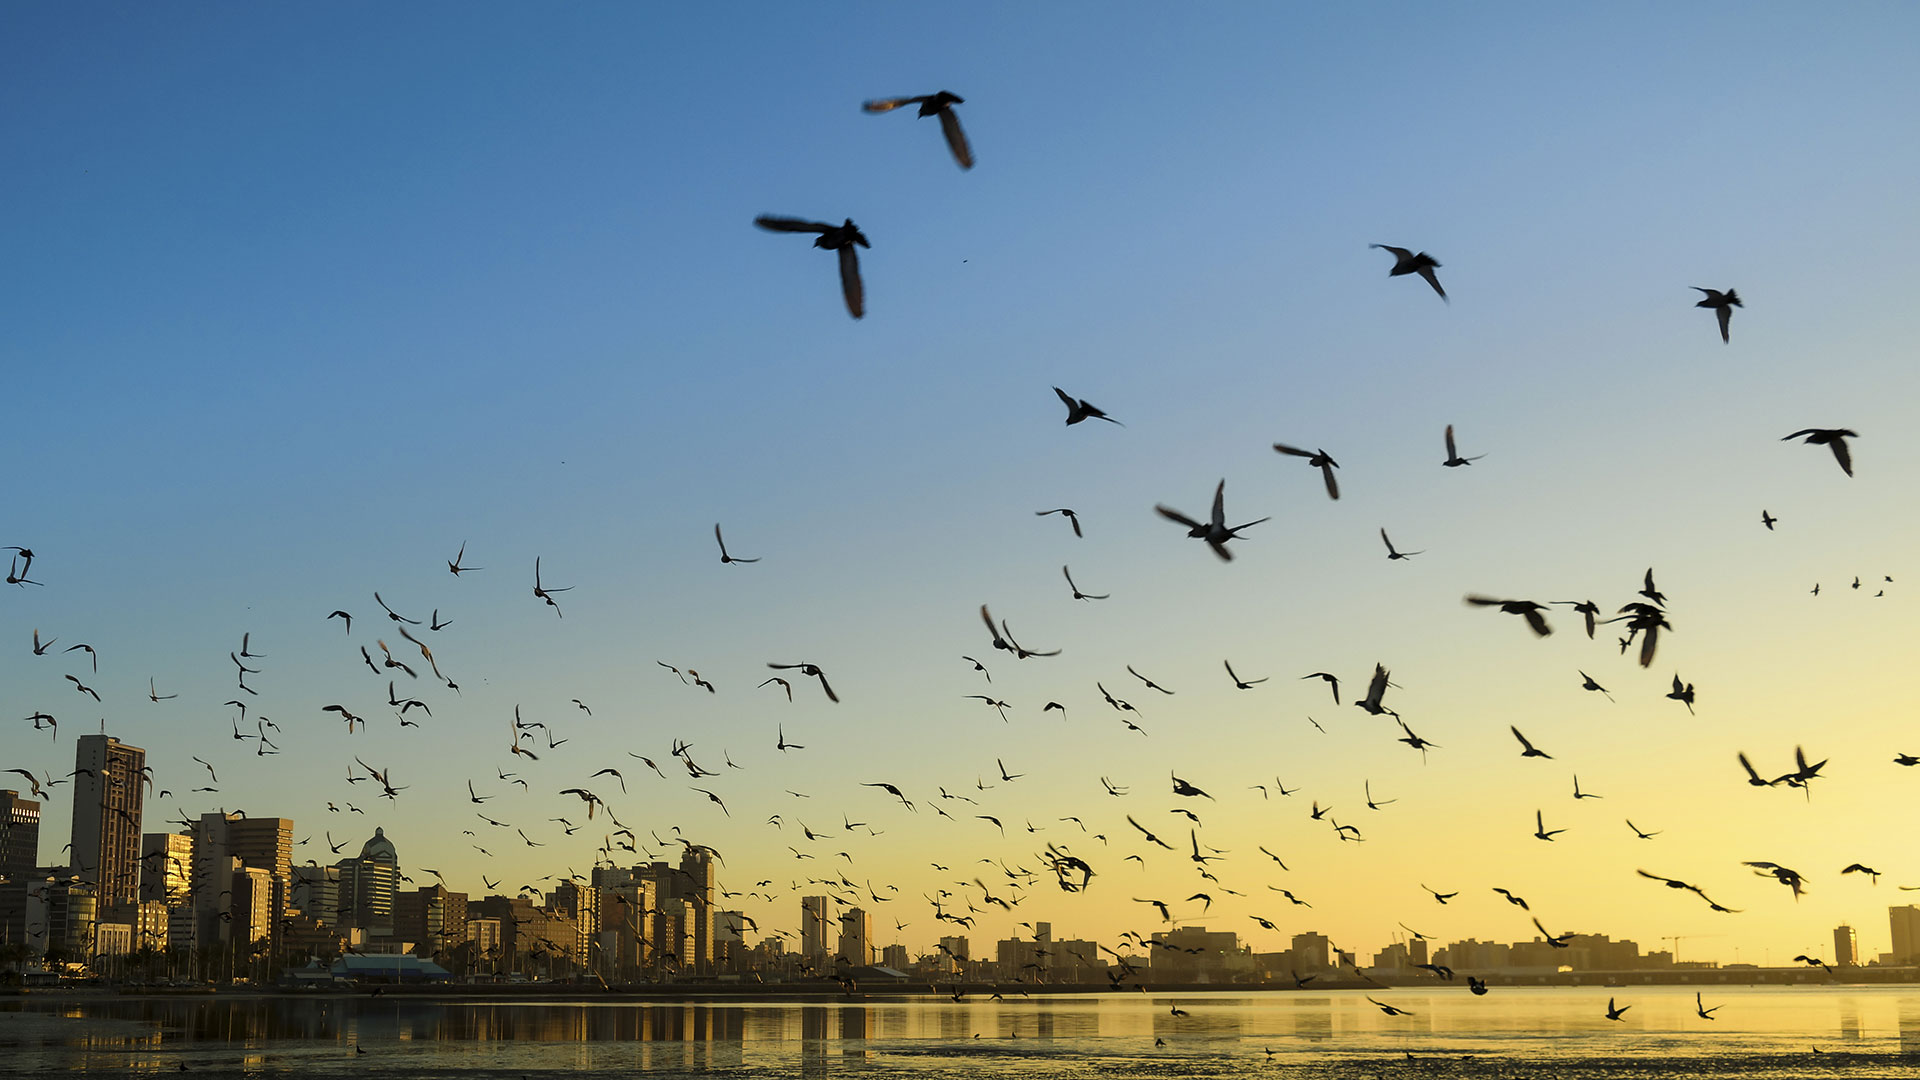 Image of flock of bird flying over water towards city